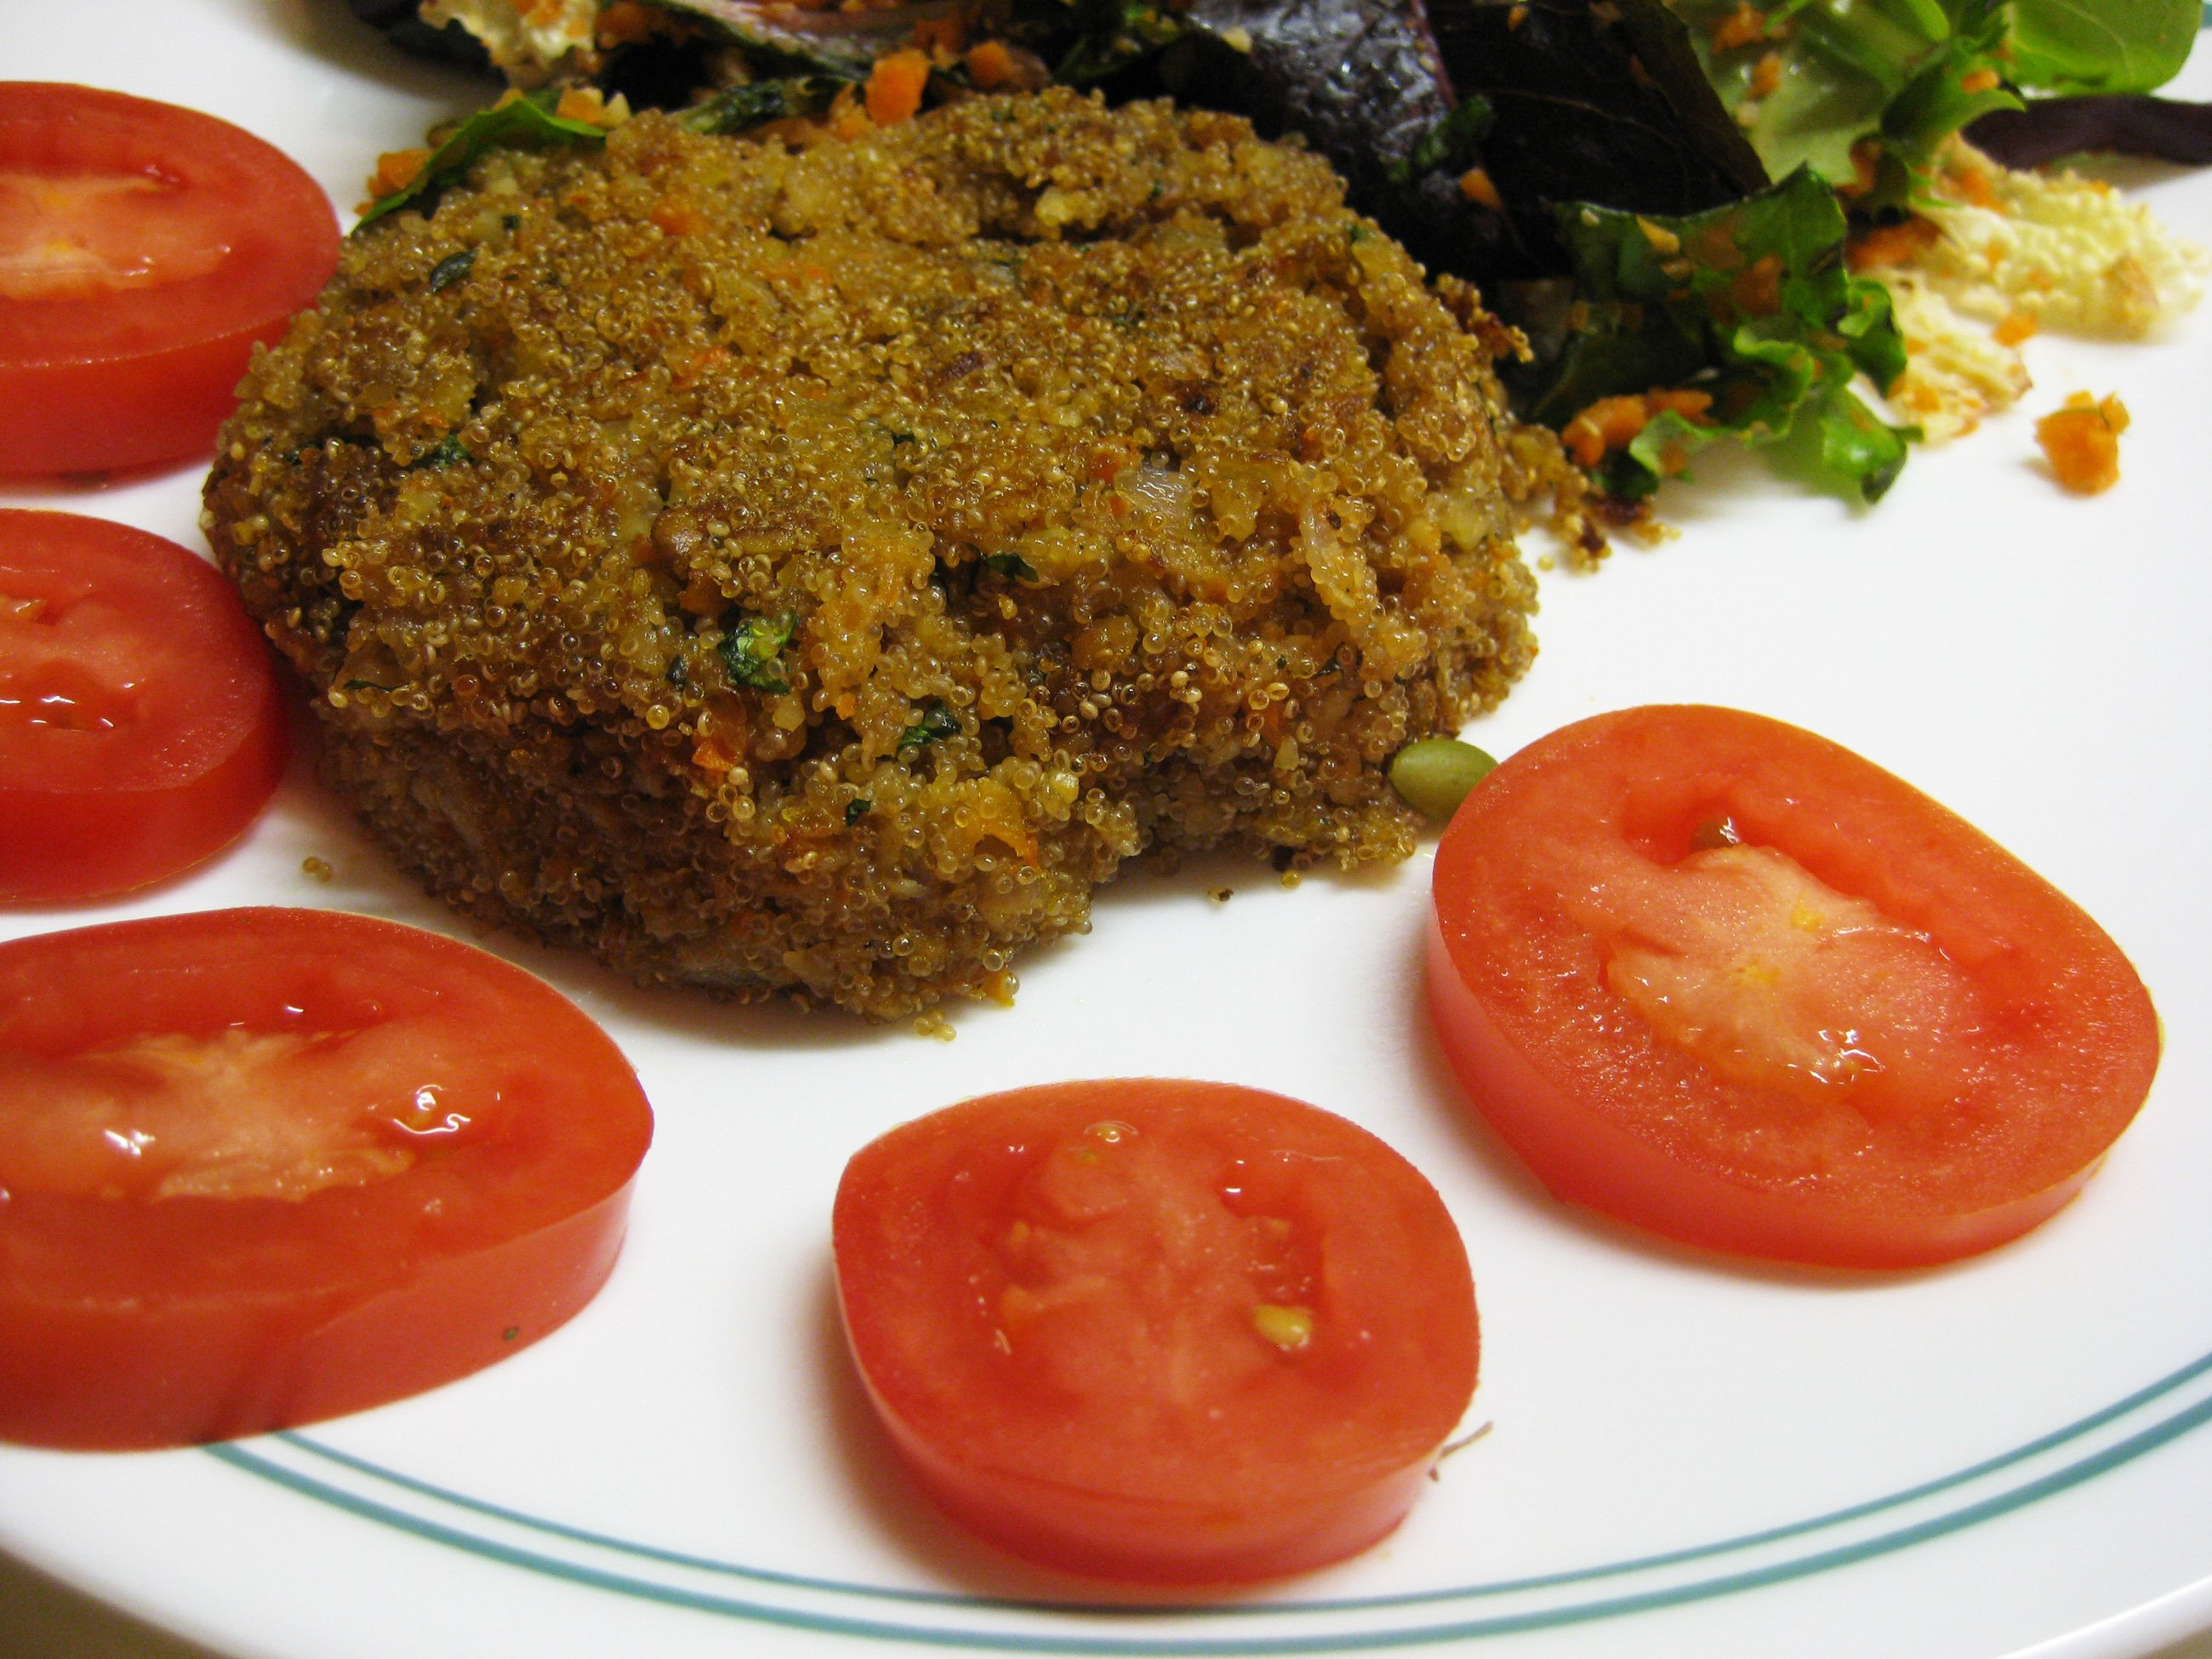 Herbed Amaranth Cakes on a plate with tomatoes and salad